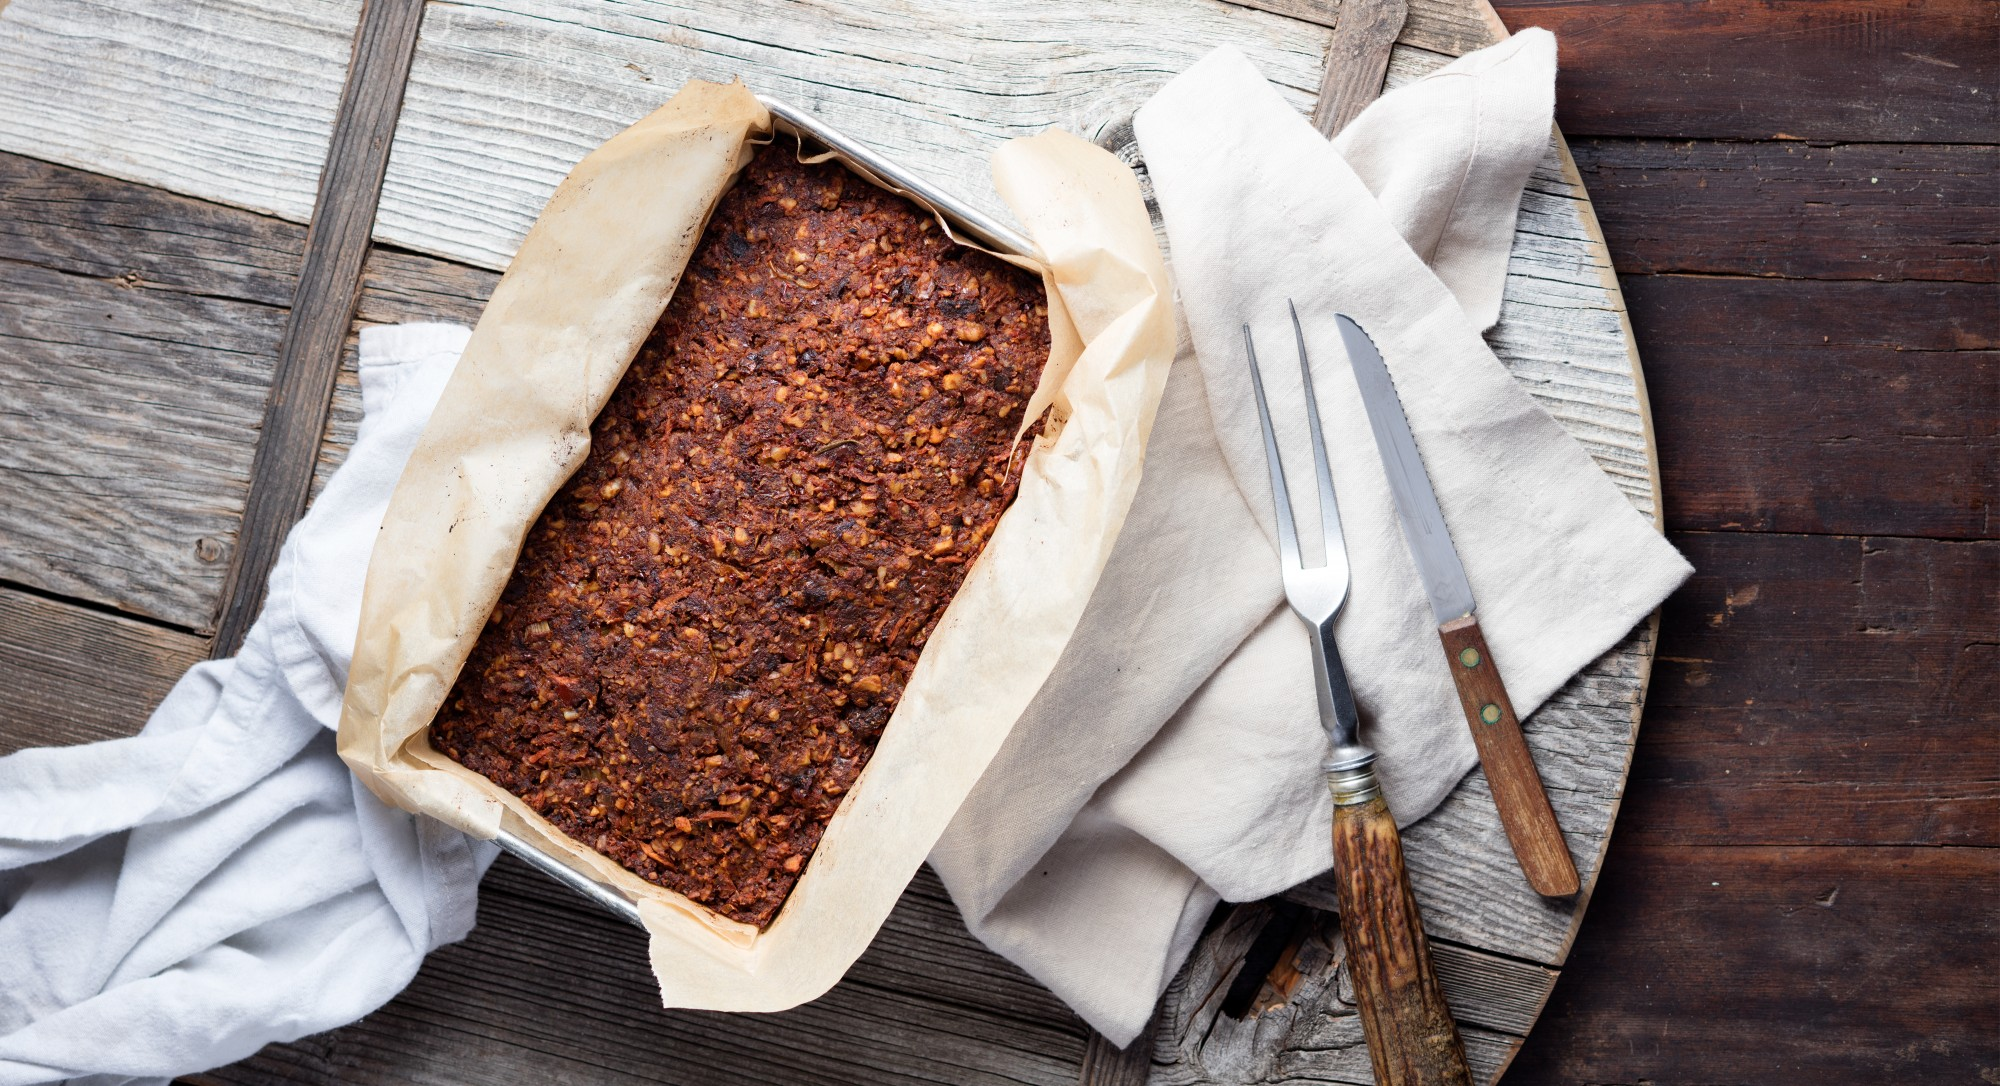 Reinventing a Classic: This Vegan 'Meatloaf' Is Better Than The Original